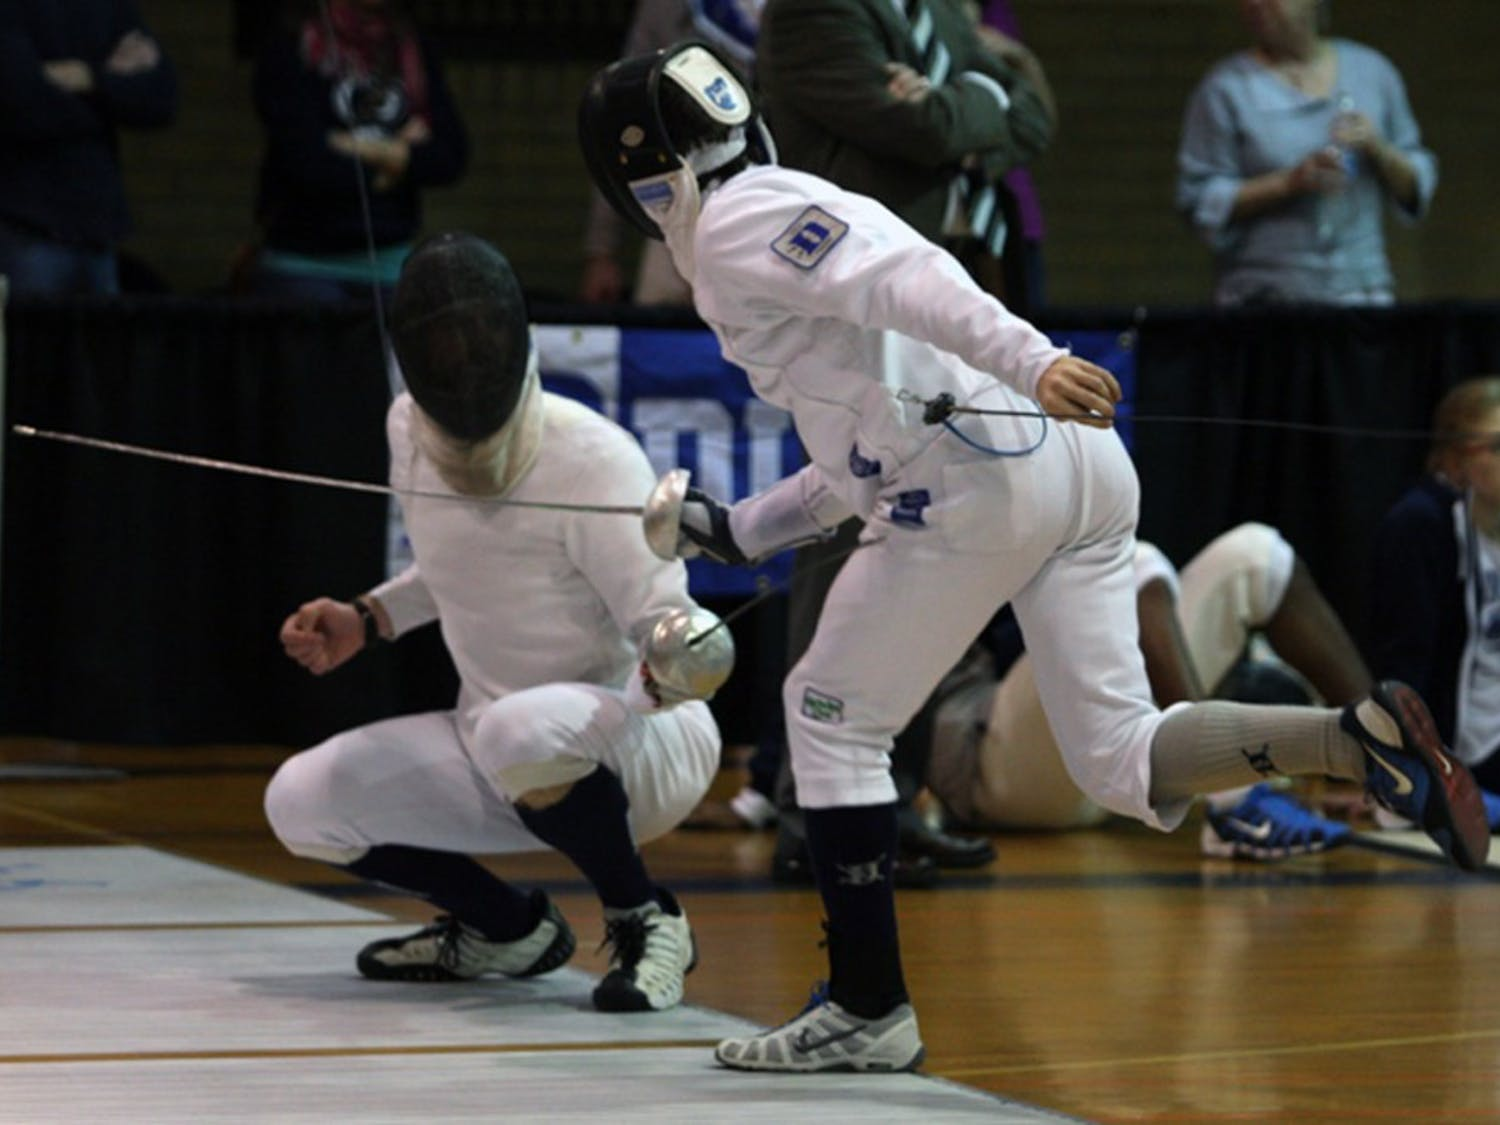 The Blue Devil men went 4-1 Saturday, falling just to No. 1 Penn State. The team claimed the Epee Cup for the best performance in the discipline.